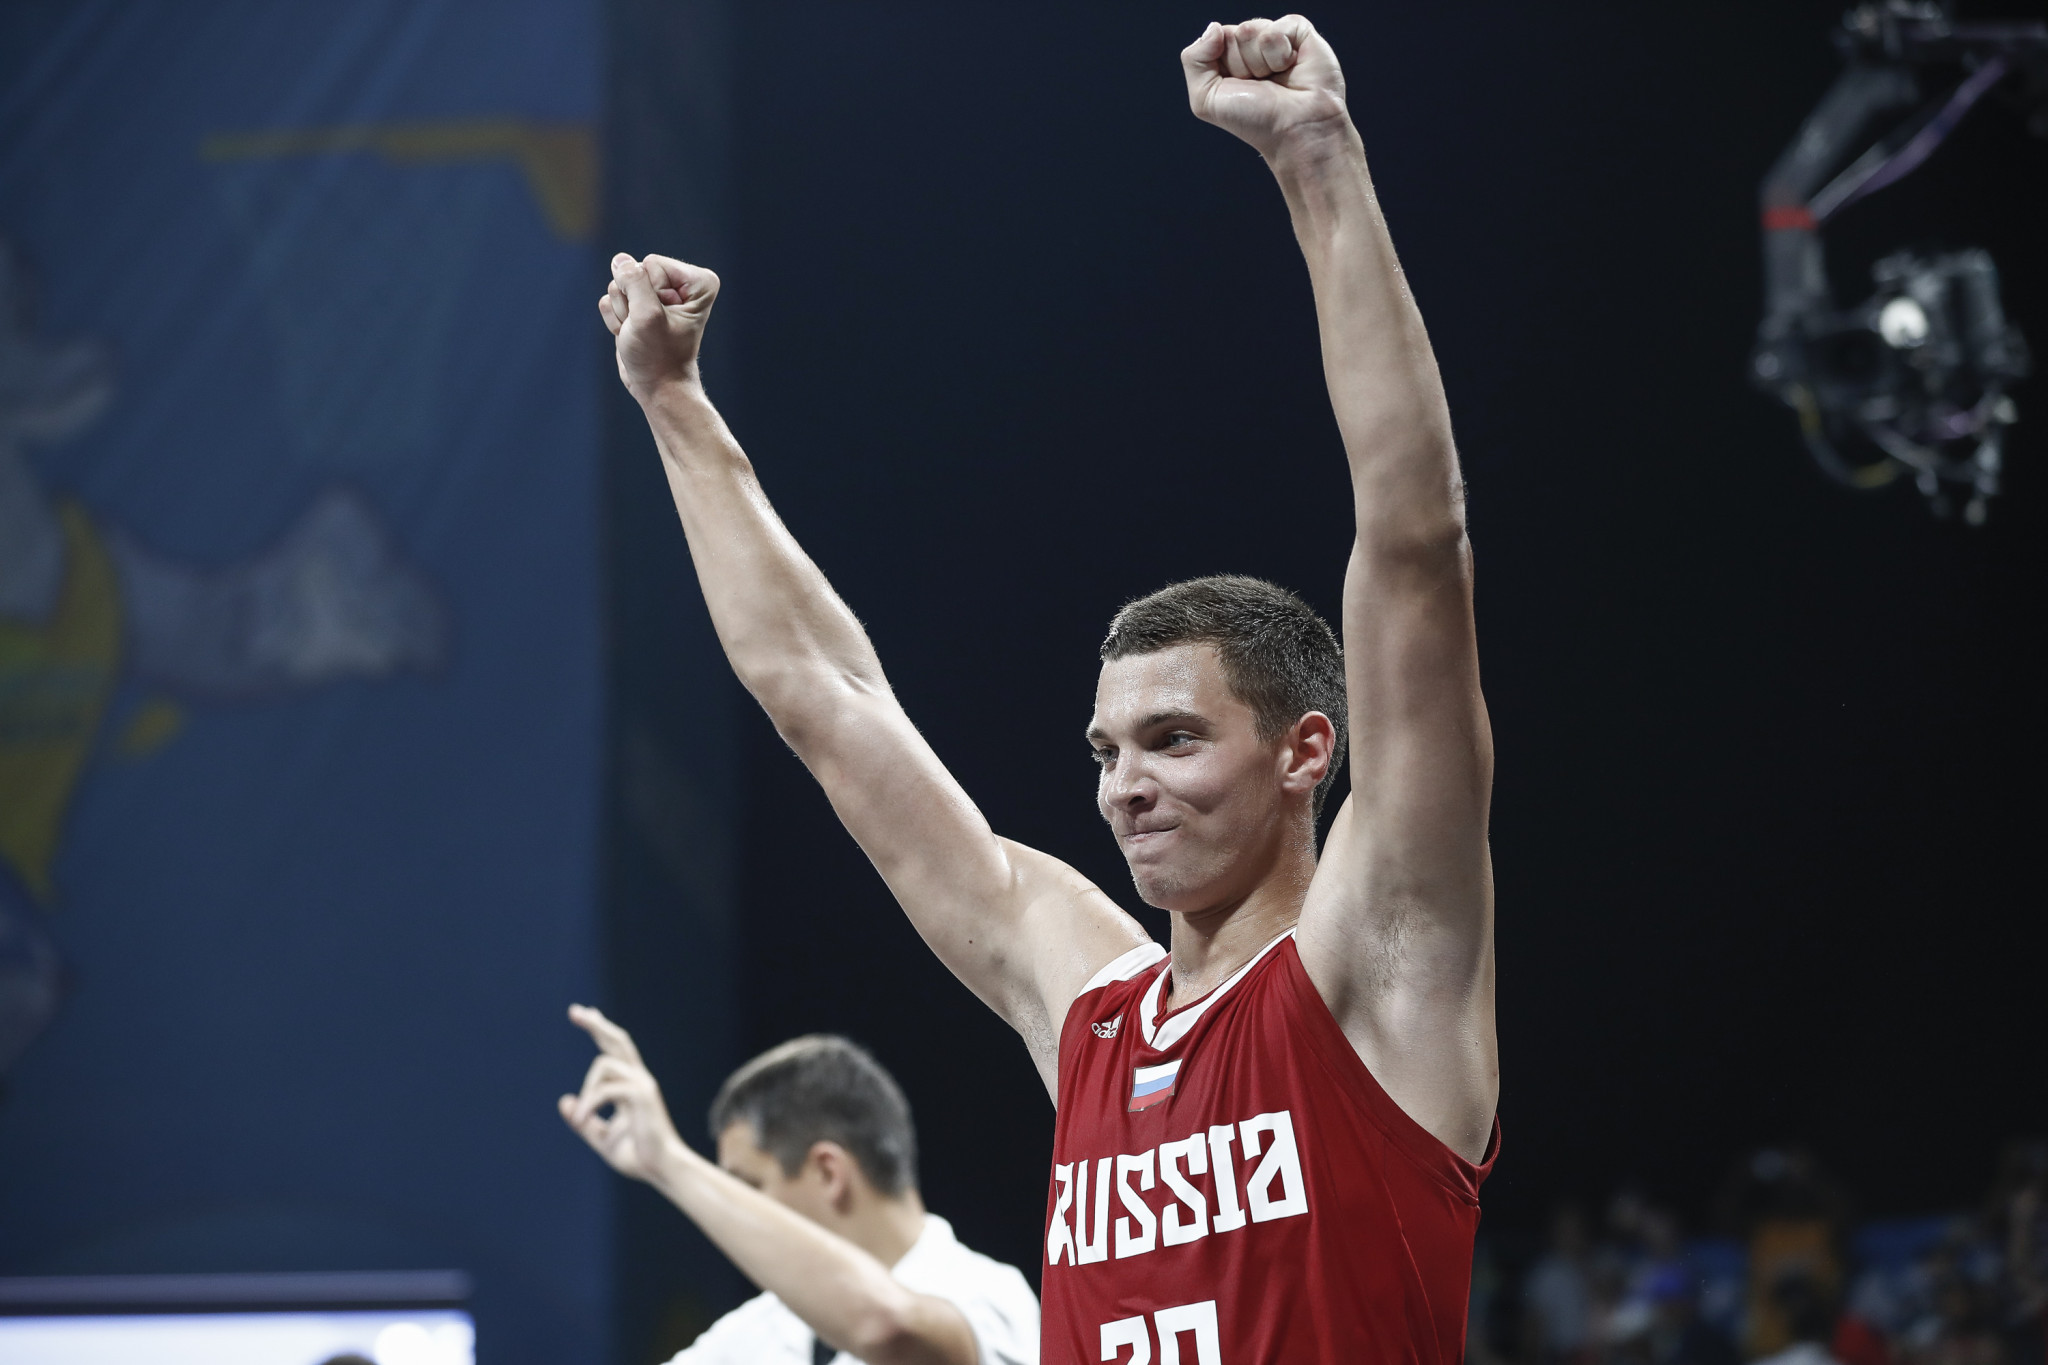 Russia won the men's 3x3 basketball crown ©ANOC